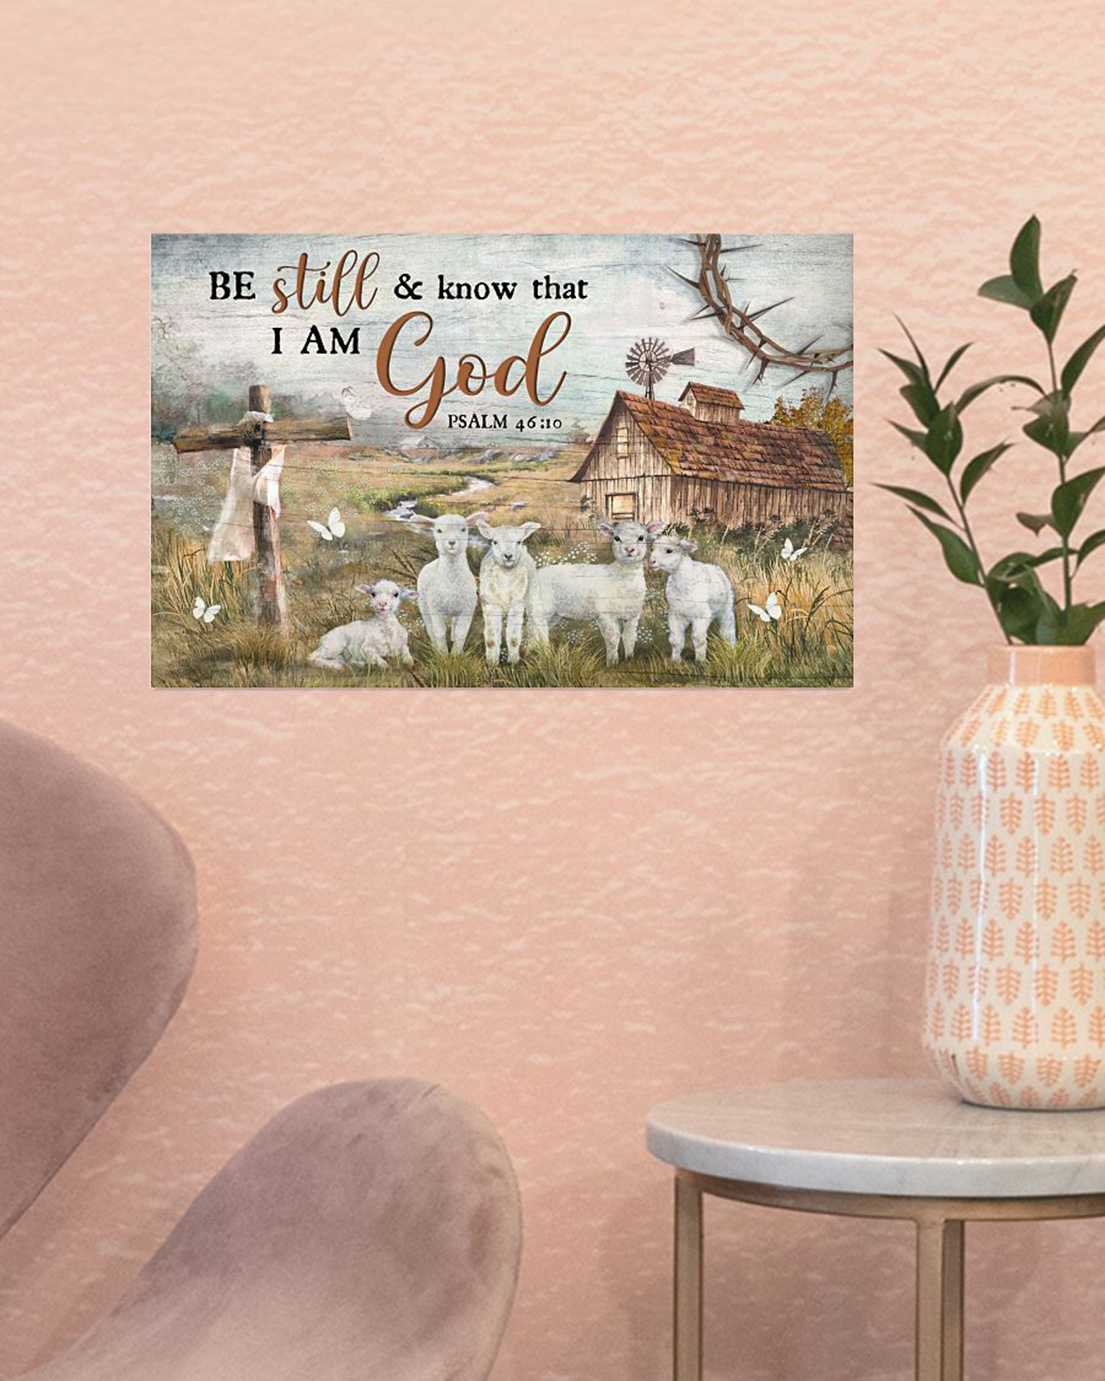 Lamb Be still and know that I am god poster - Picture 1